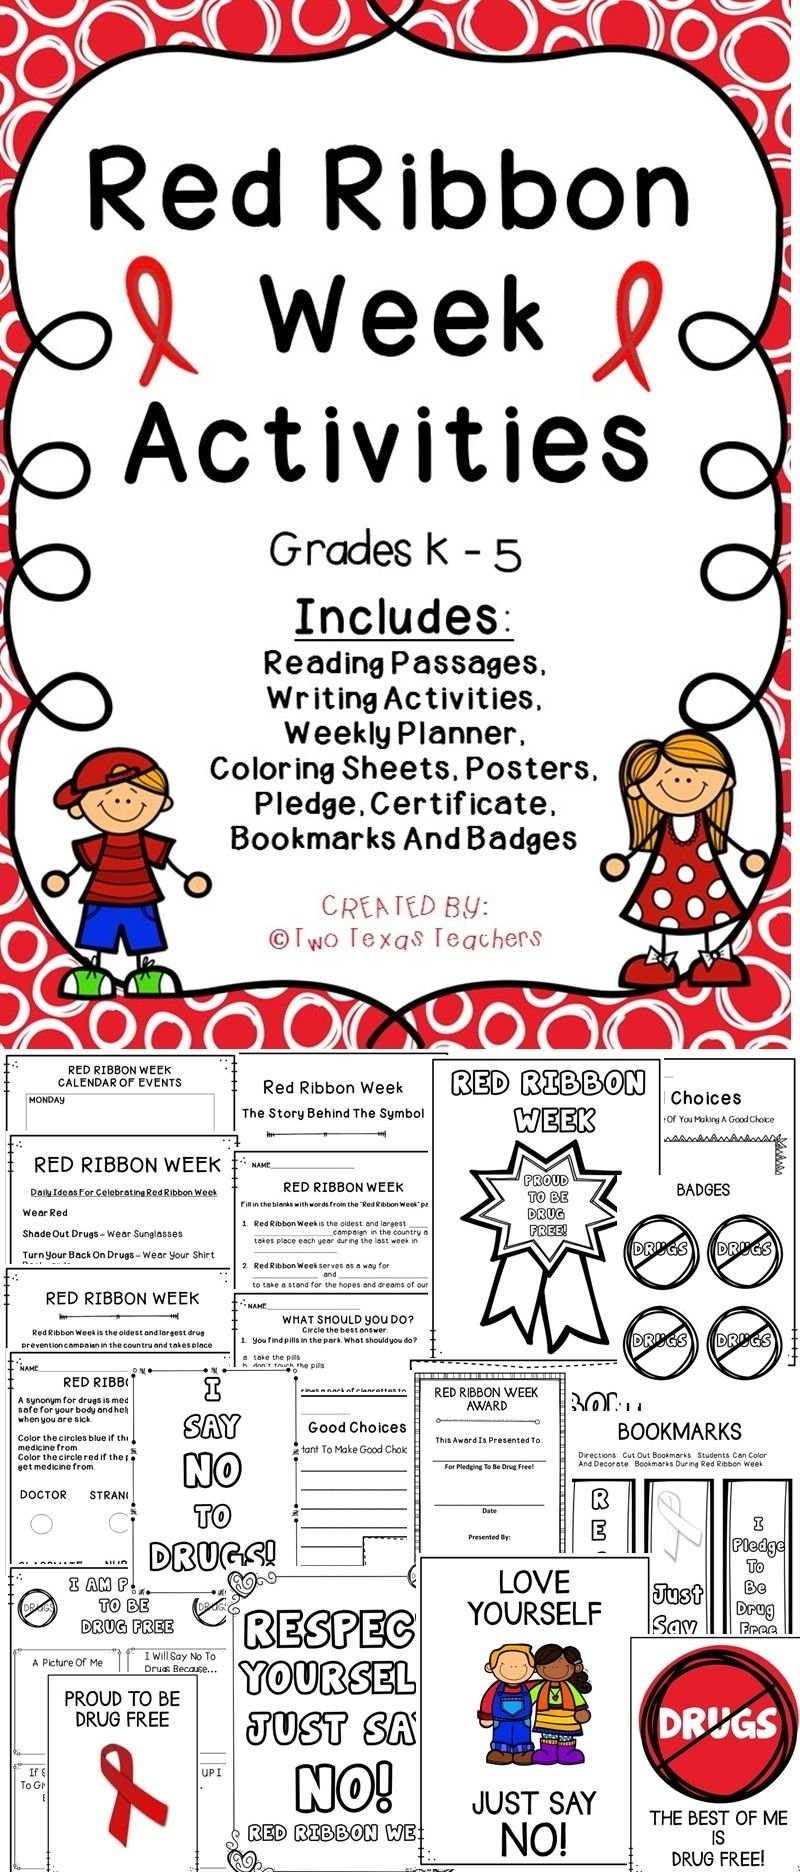 10 Lovable Red Ribbon Week Ideas For Elementary School red ribbon week red ribbon week activities and counselling 1 2020